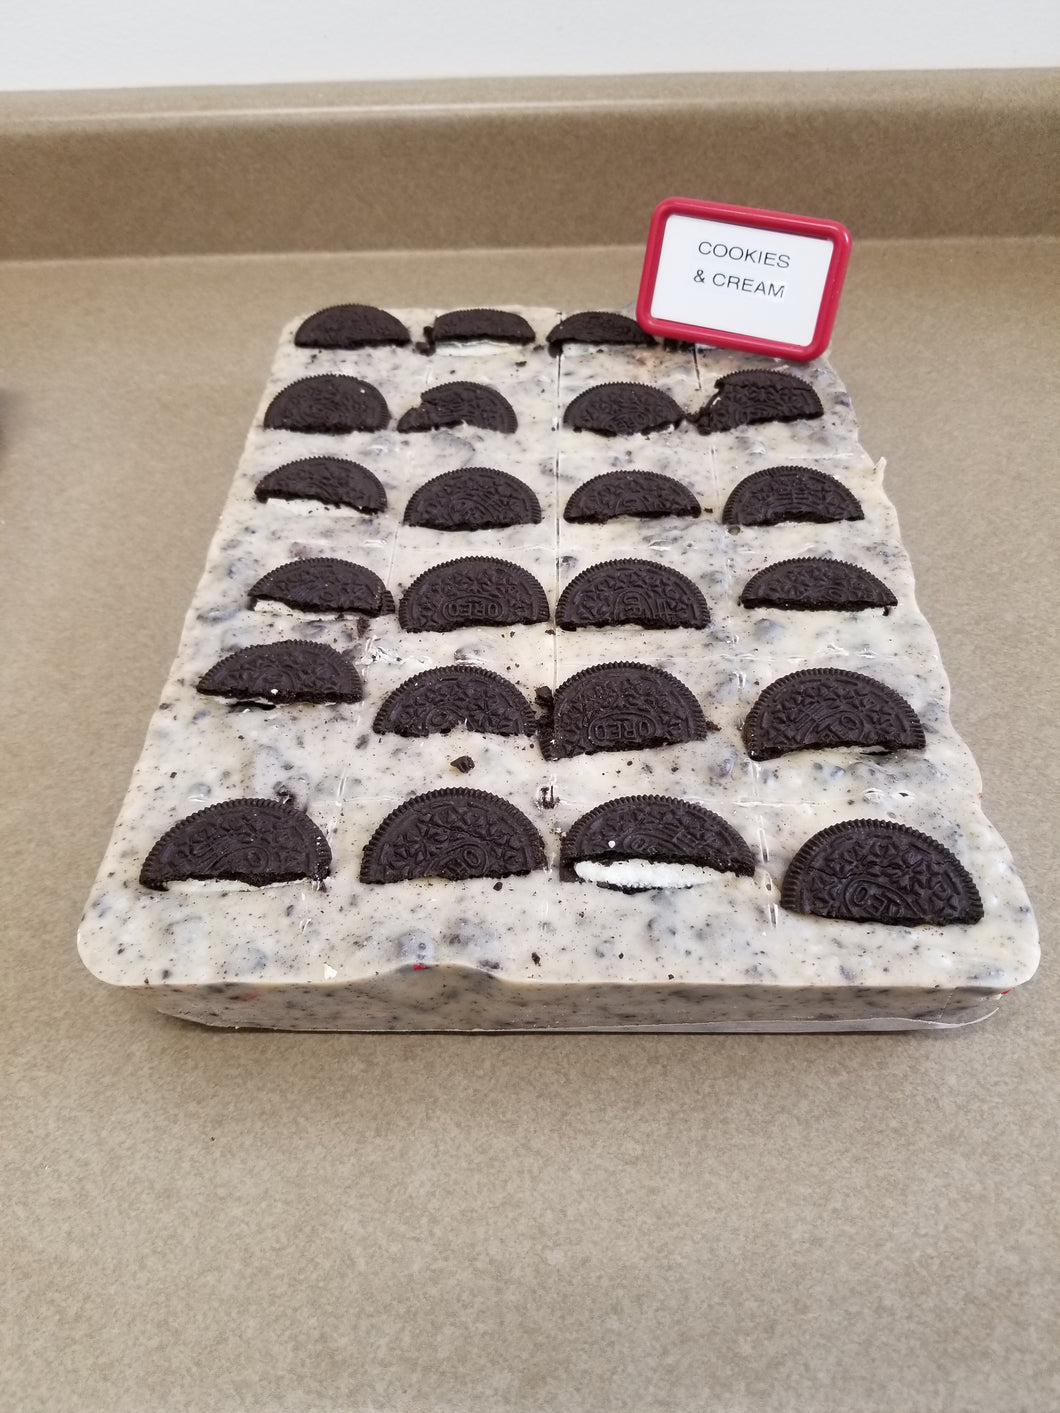 Cookies & Cream Fudge (1/2 Pound)